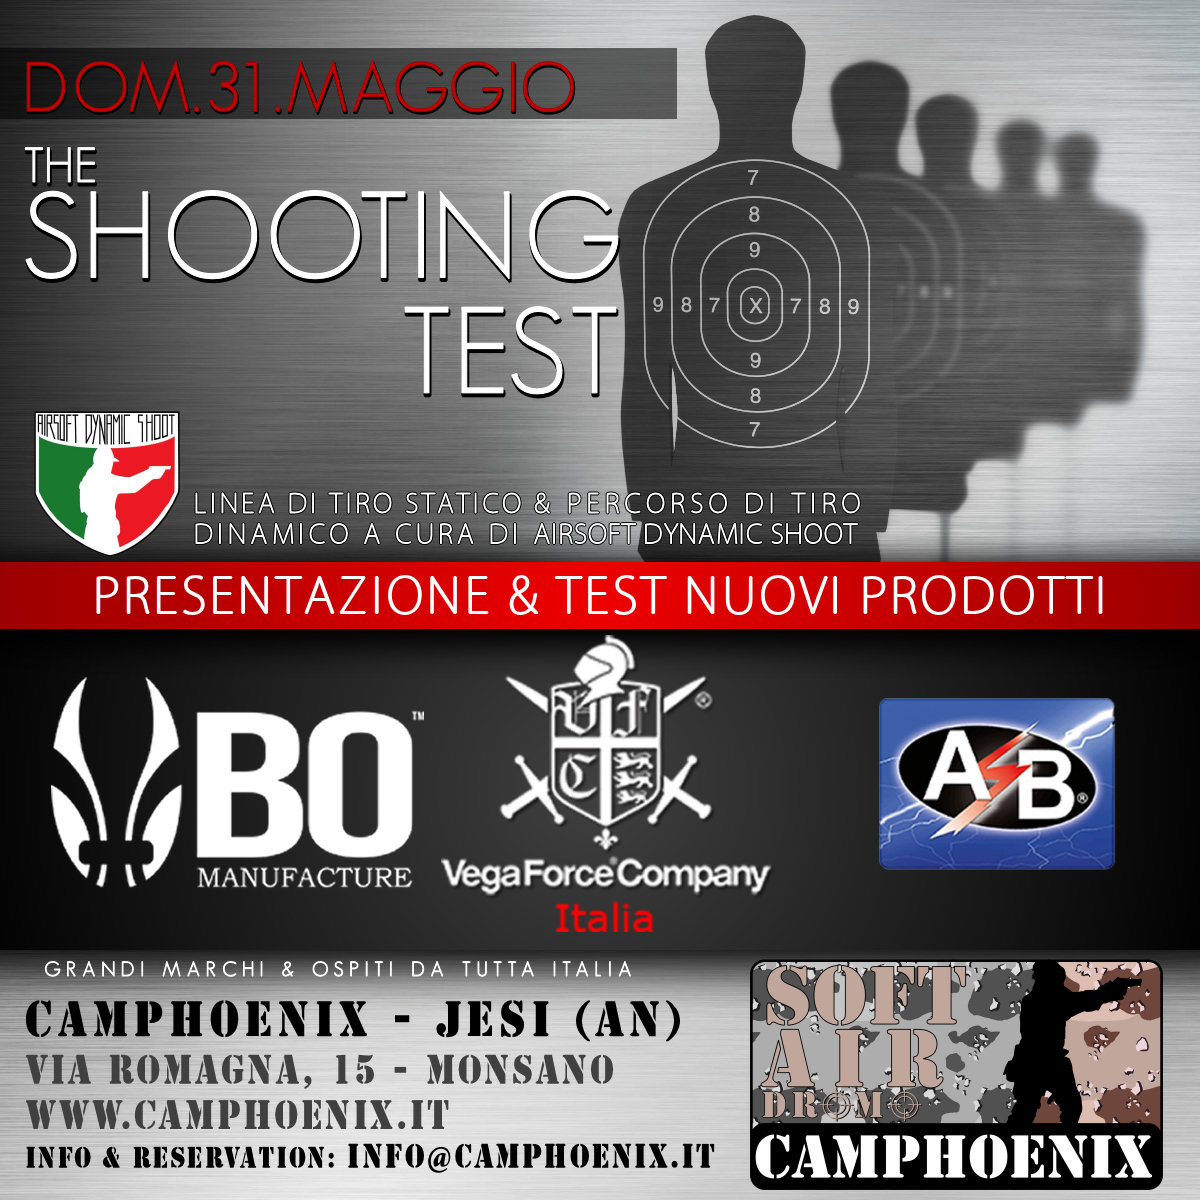 evento the shooting test domenica 31 maggio